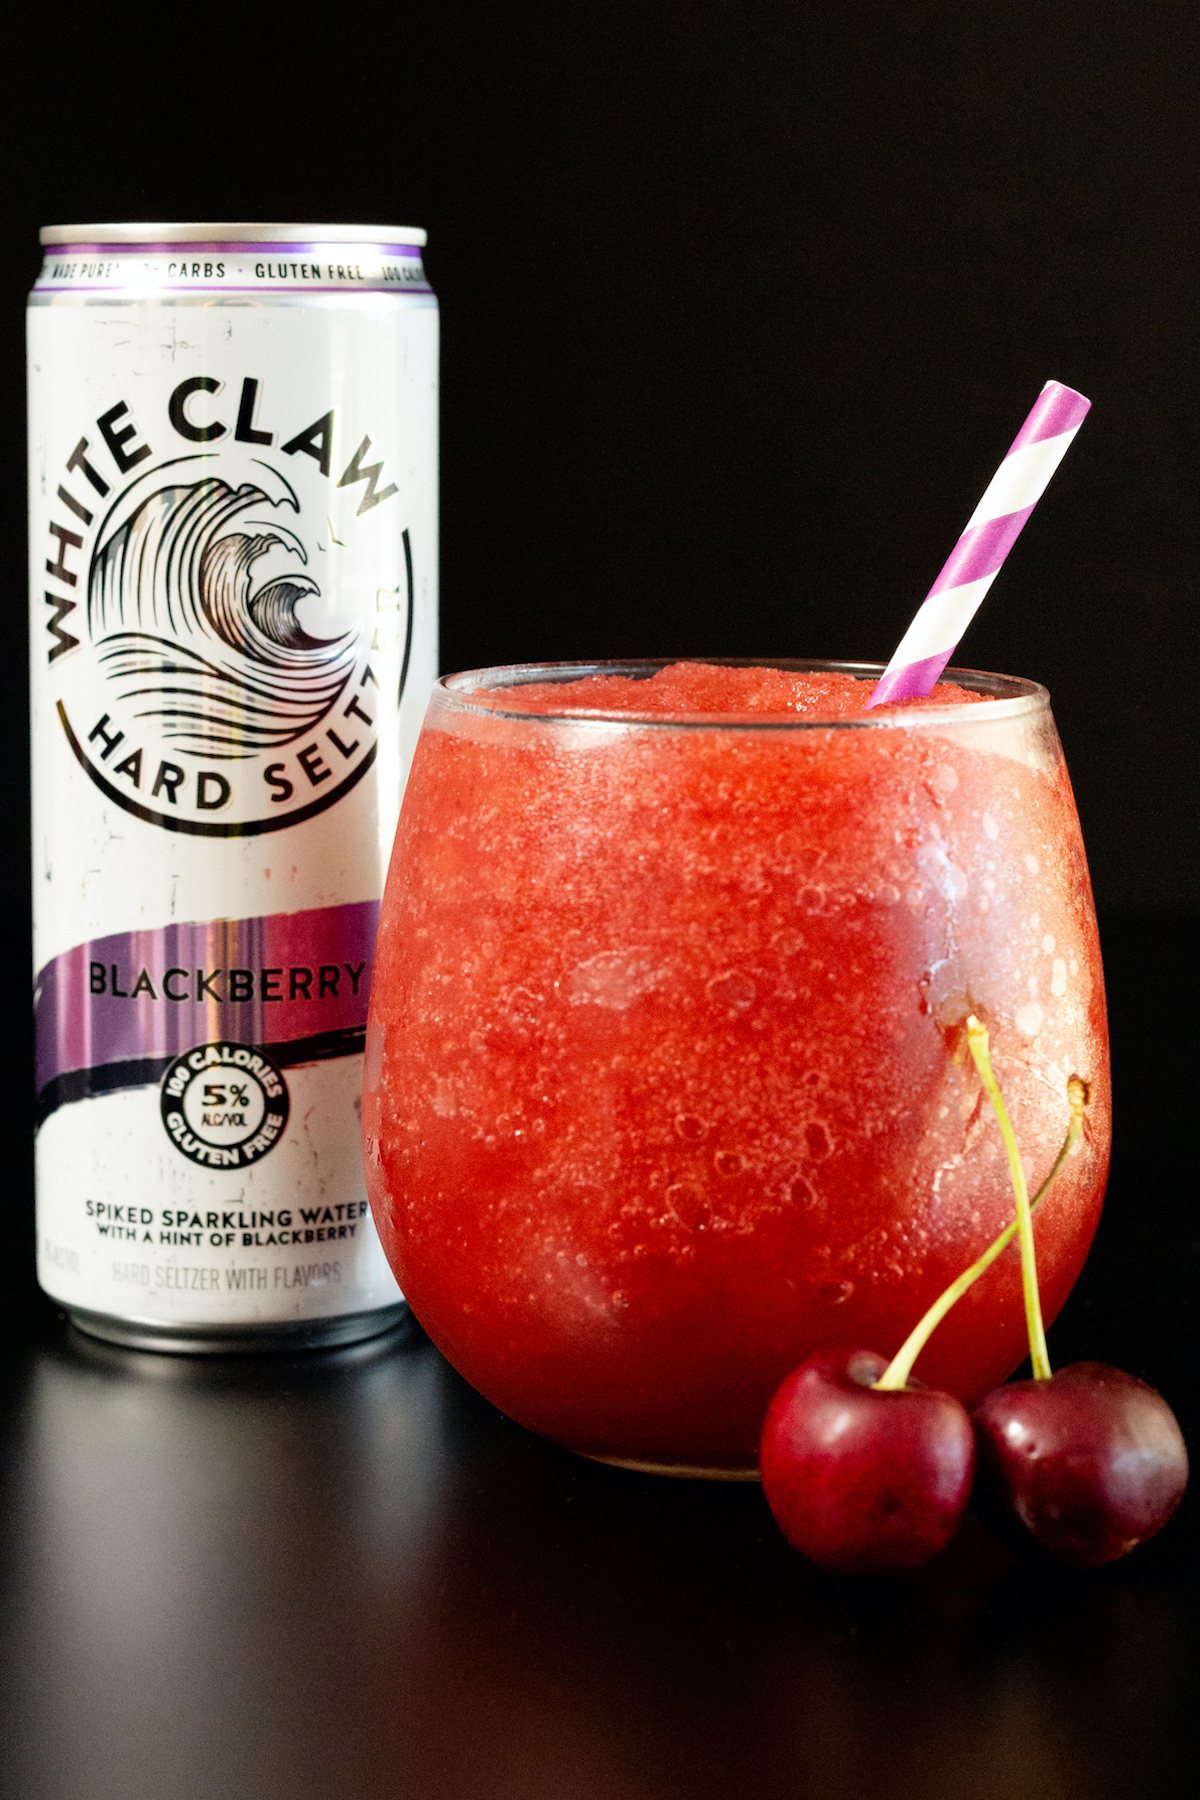 A stemless wine glass filled with a red white claw slushie sits in front of a White Claw can on a black background.